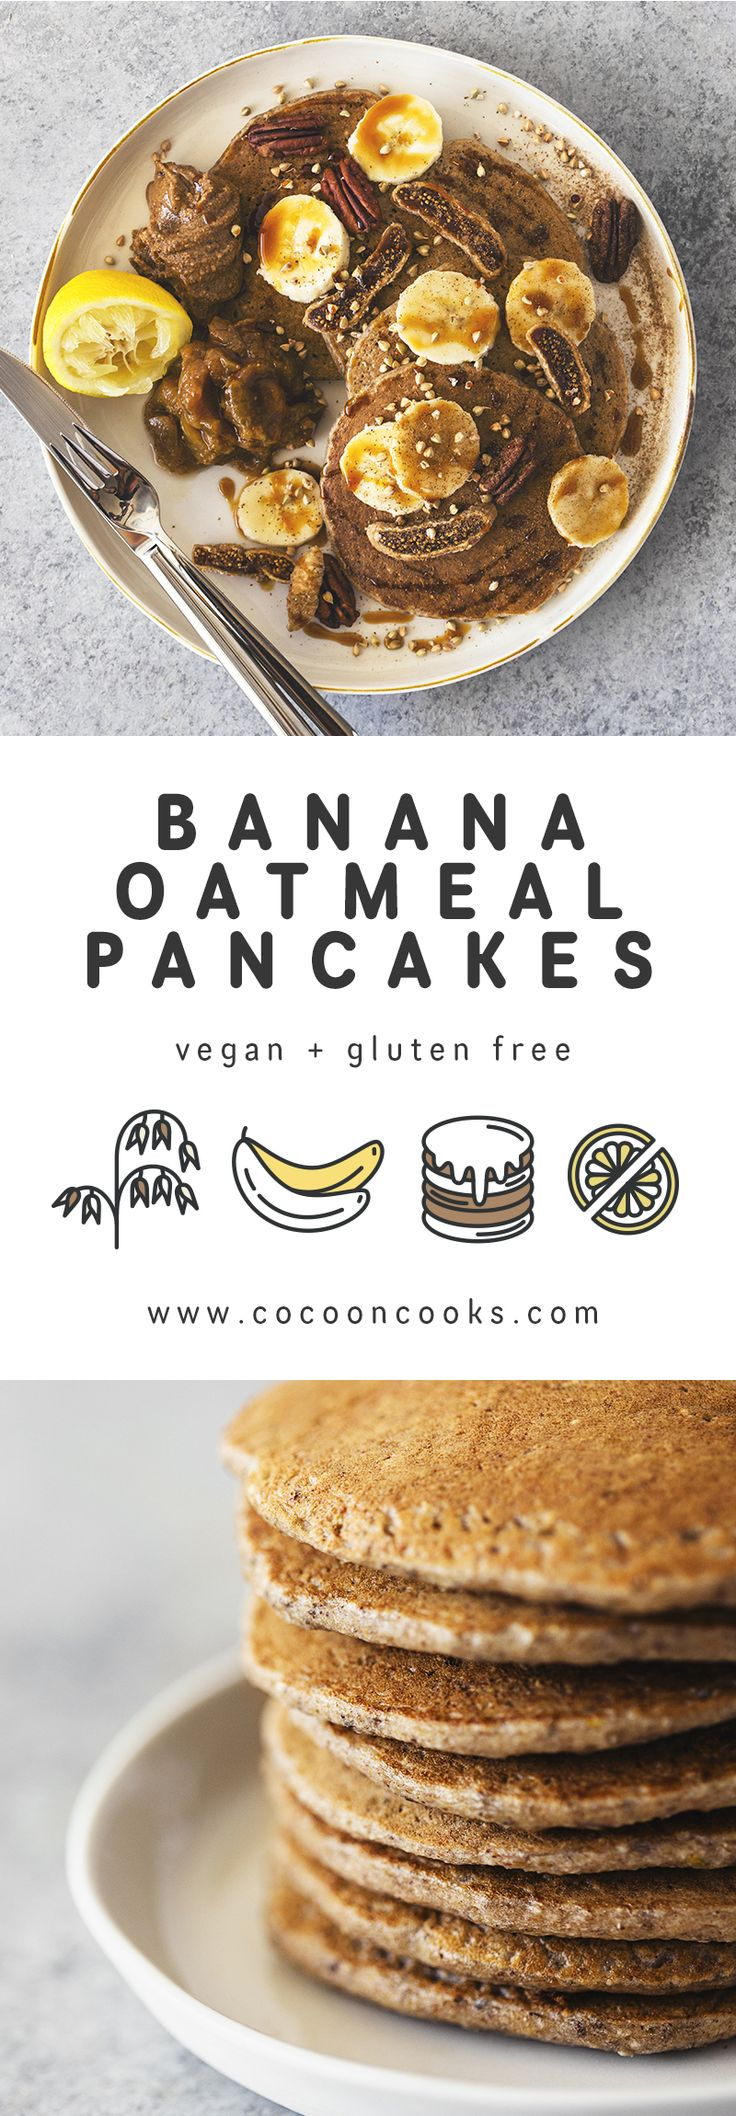 ... Oatmeal Pancakes on Pinterest | Vegan Oatmeal, Oatmeal Pancakes and